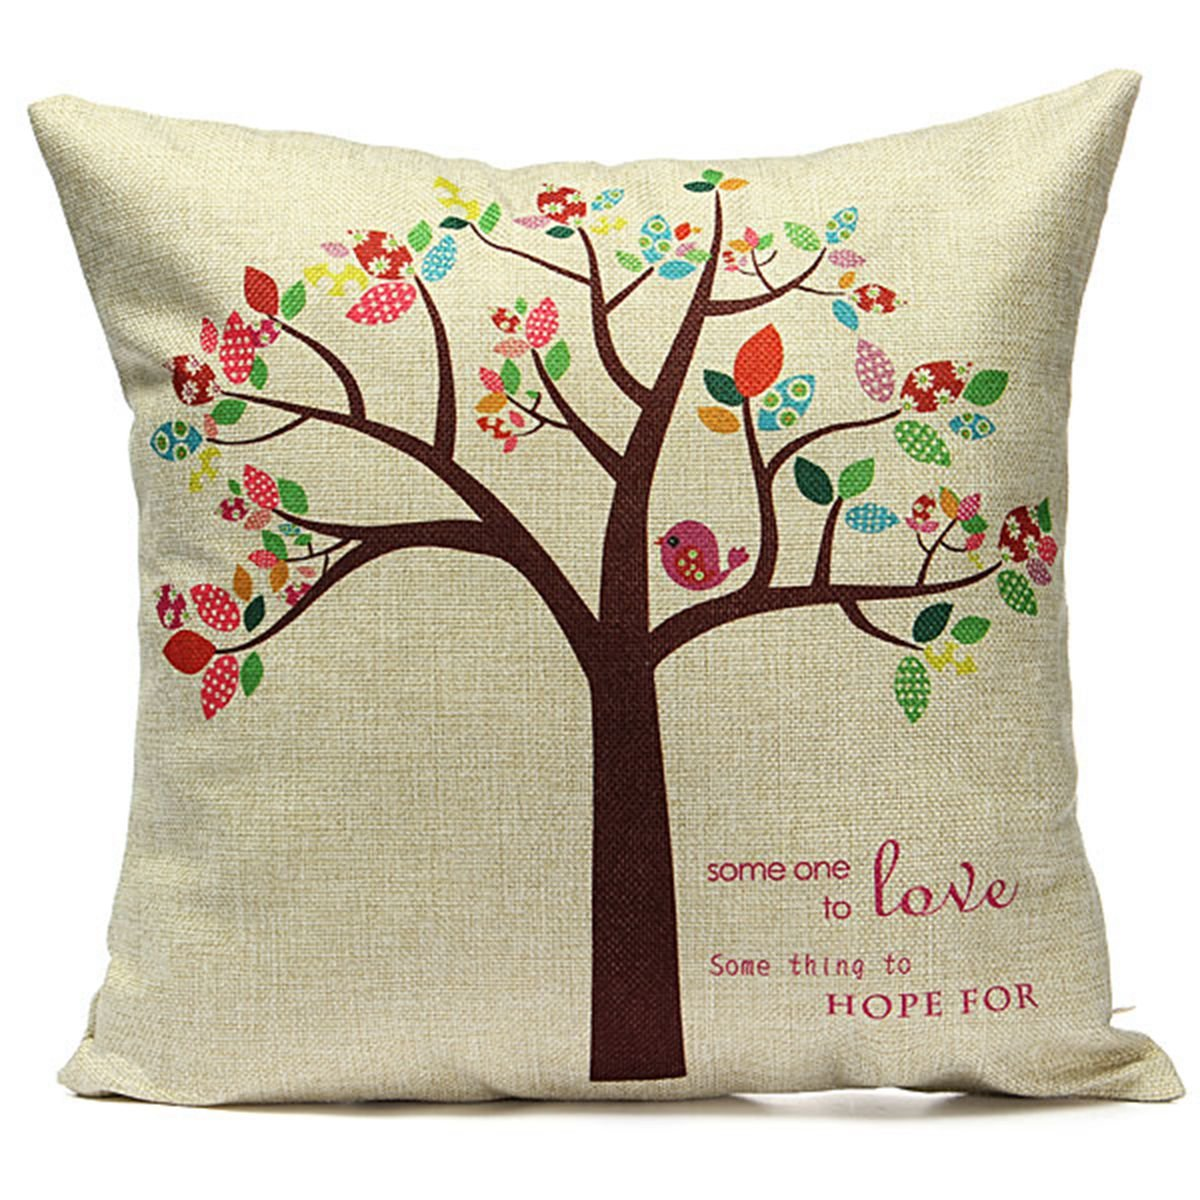 43cmx43cm Pillow Cushion Cover Decorative For Sofa Bed In